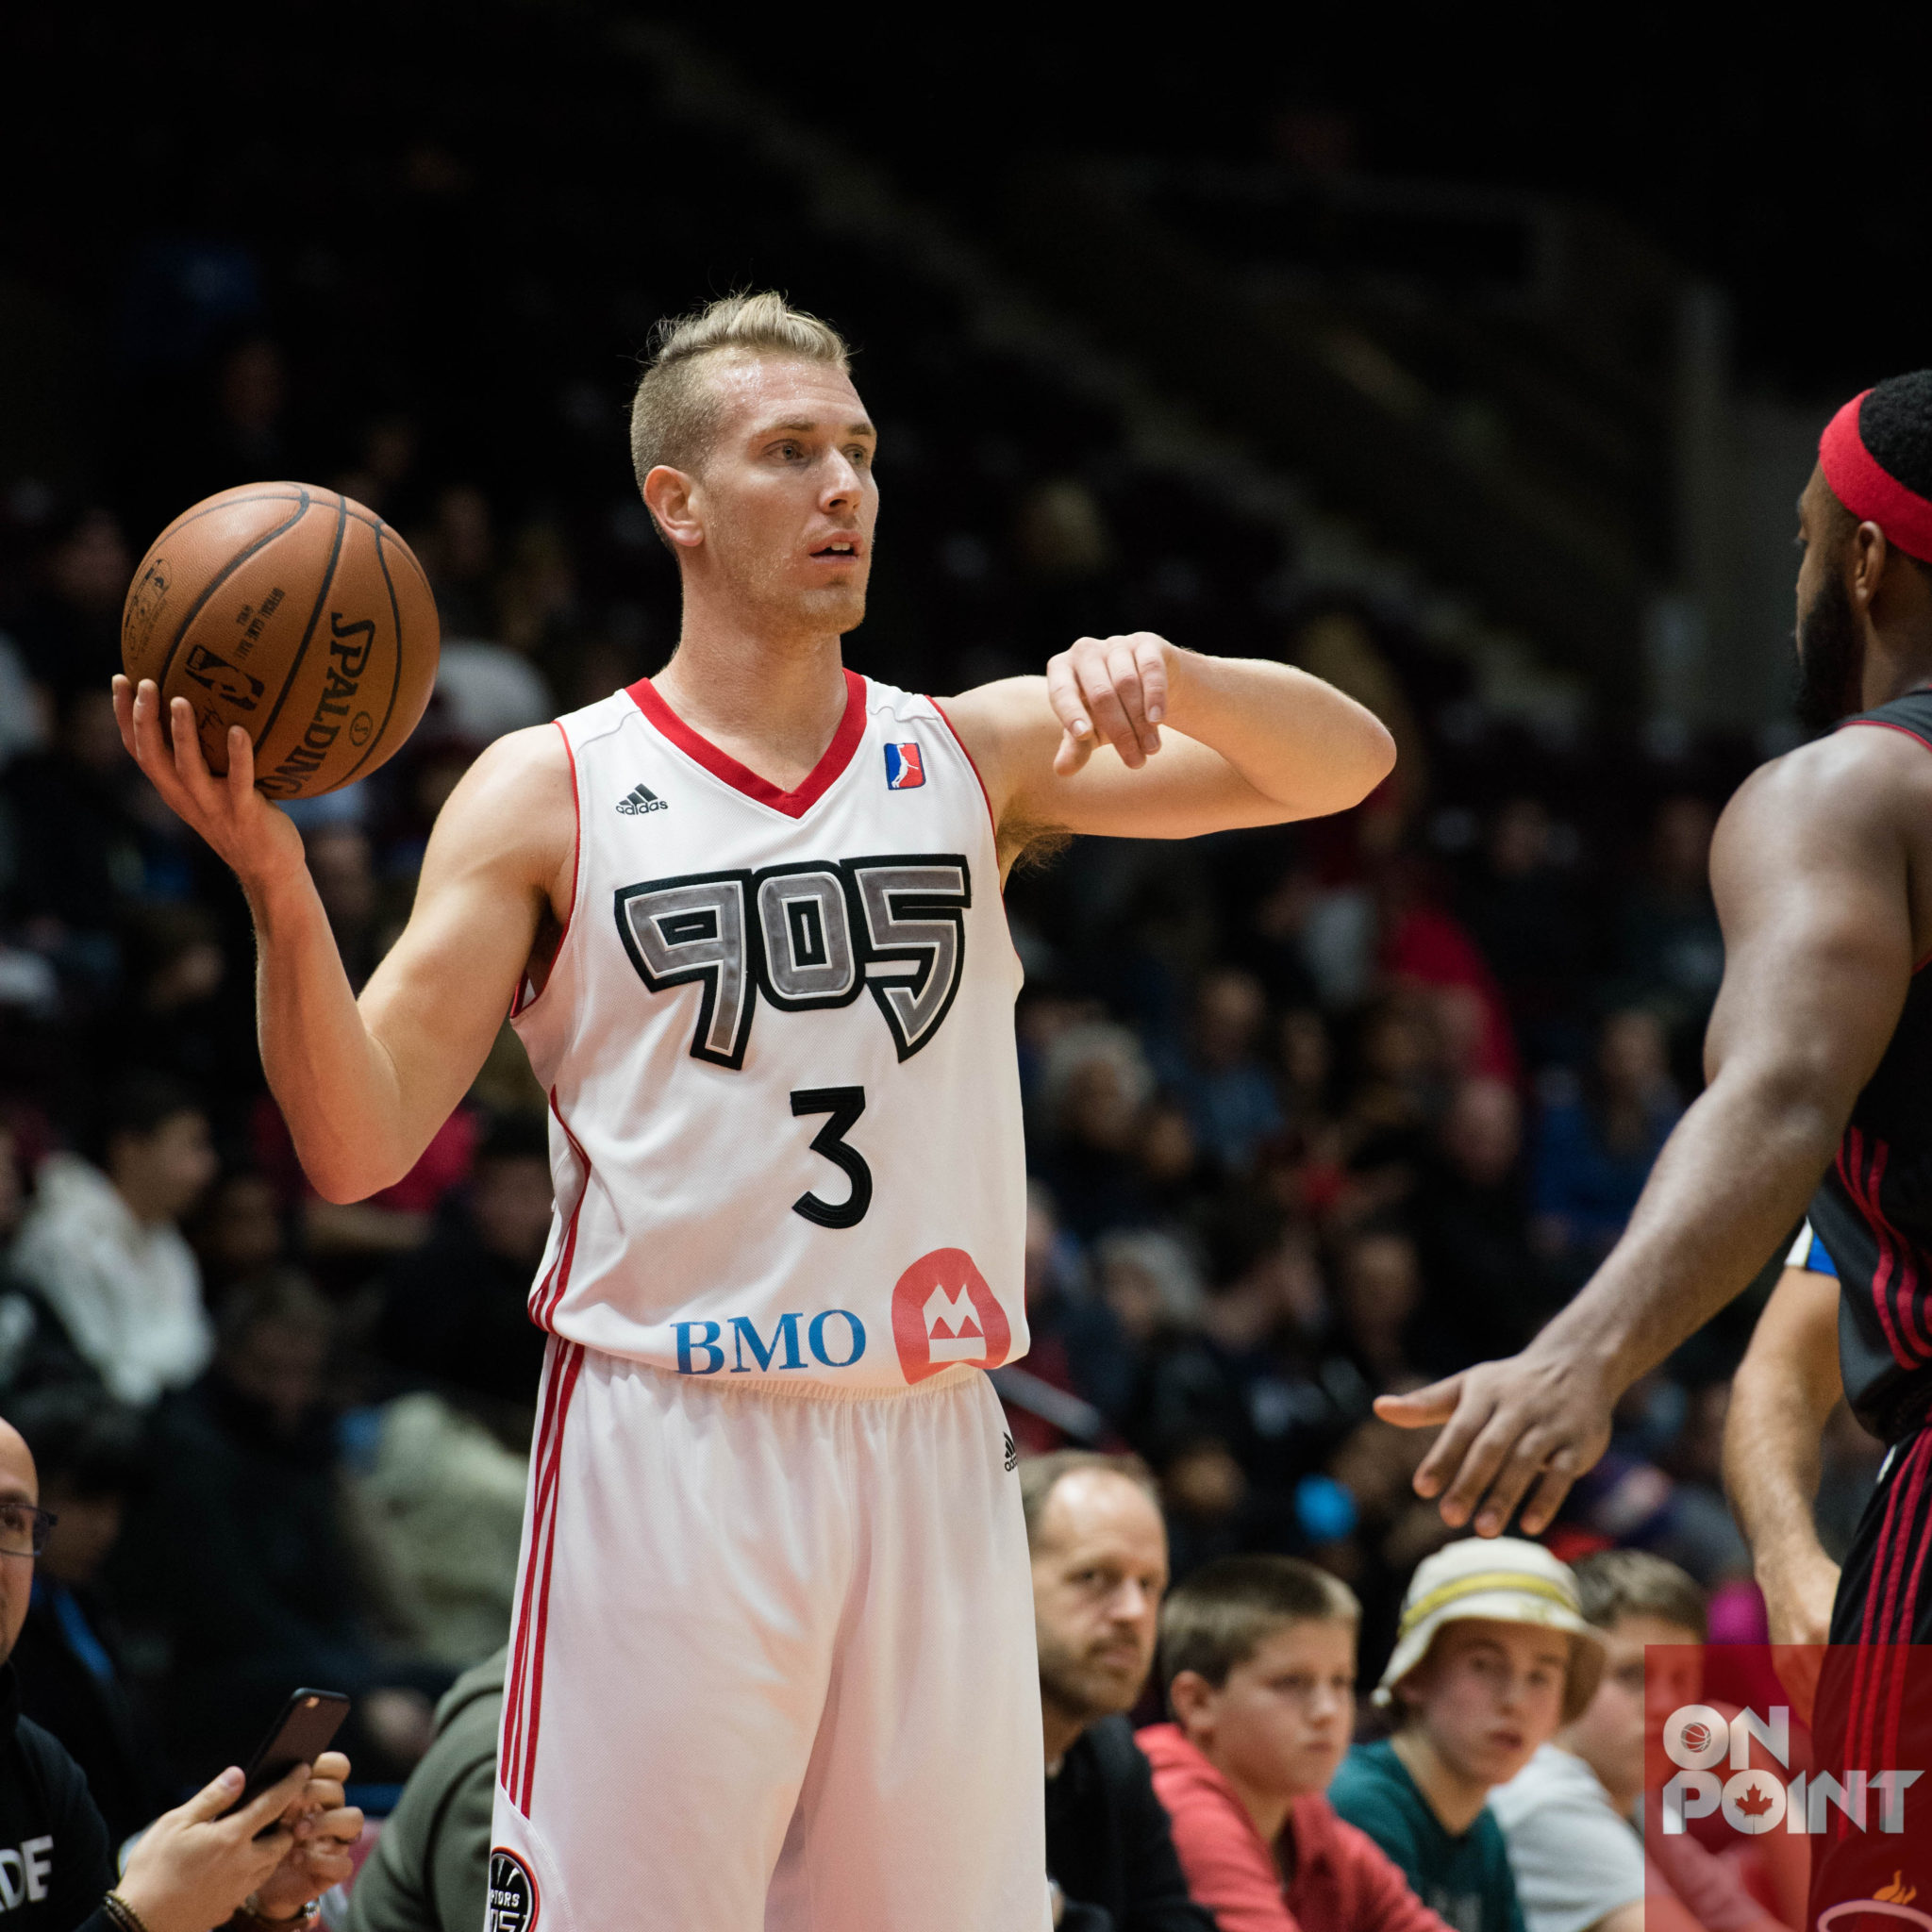 Raptors 905 Fall Short to Maine Red Claws in Low Scoring Outing